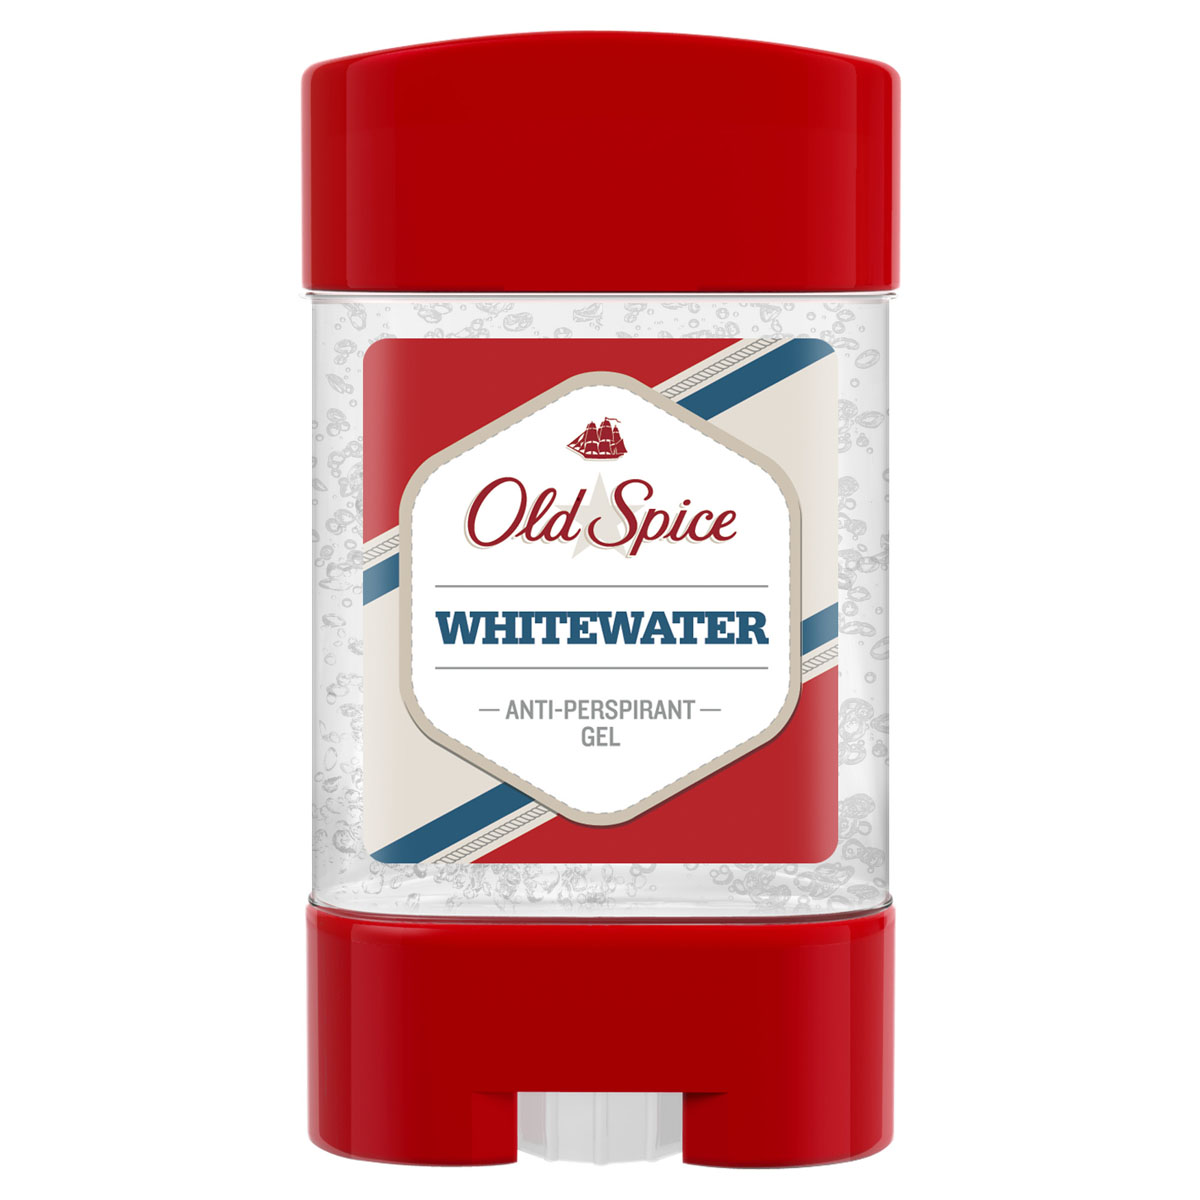 Old Spice Гелевый дезодорант-антиперспирант WhiteWater, 70 мл дезодоранты gillette дезодорант антиперспирант гелевый power beads cool wave page 9